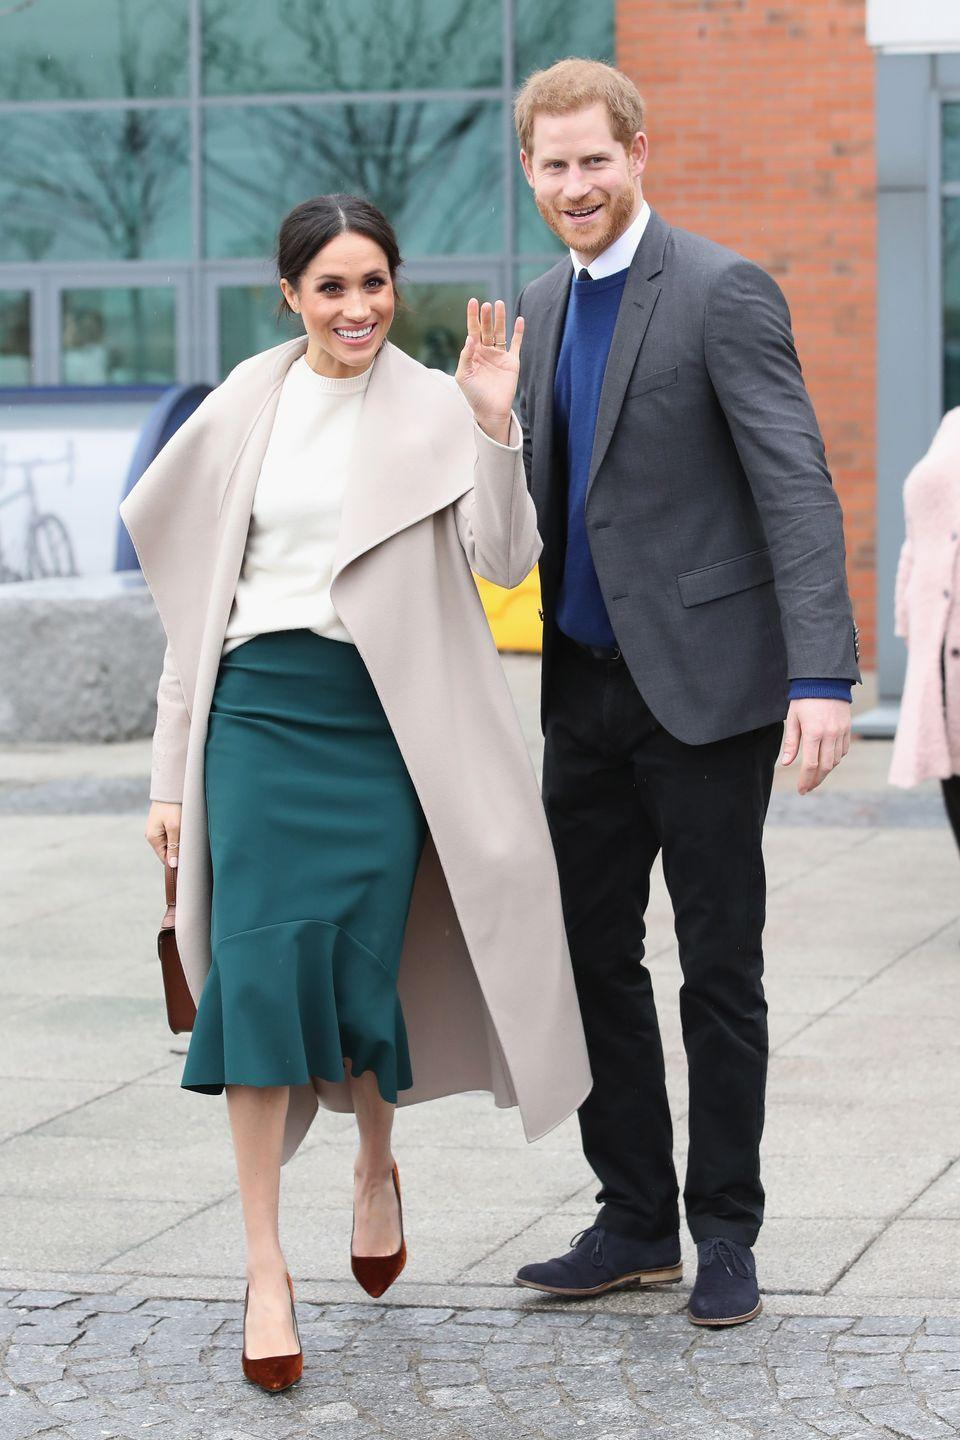 <p>Prince Harry and Meghan Markle visit Northern Ireland ahead of their May wedding. </p>